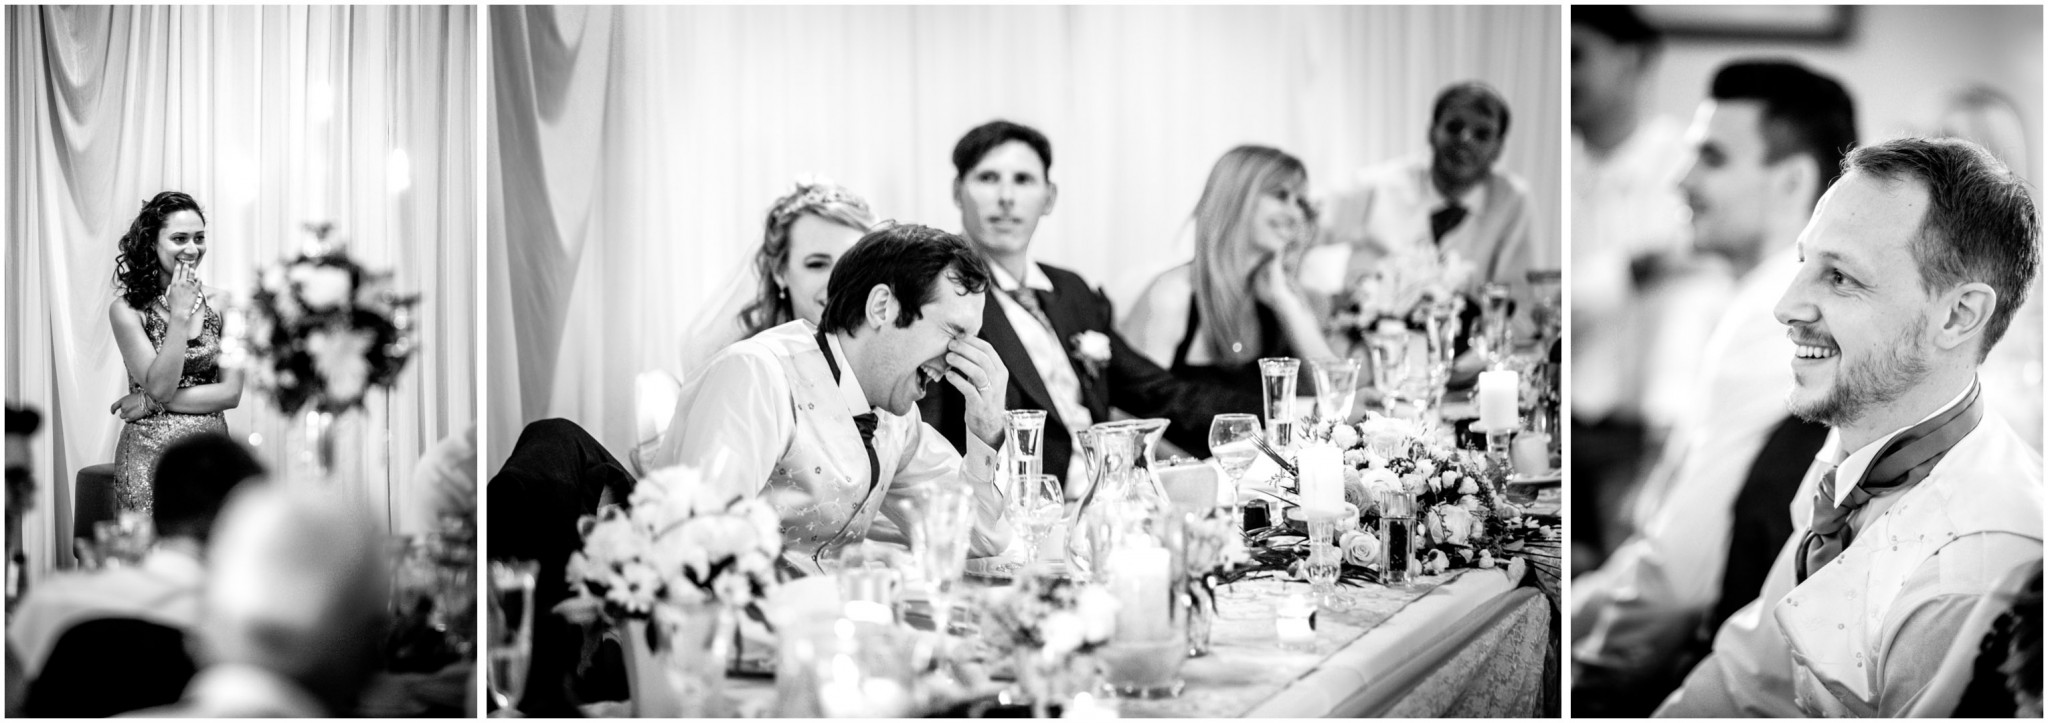 Highfield Park Weddding Guests reaction to the Speeches